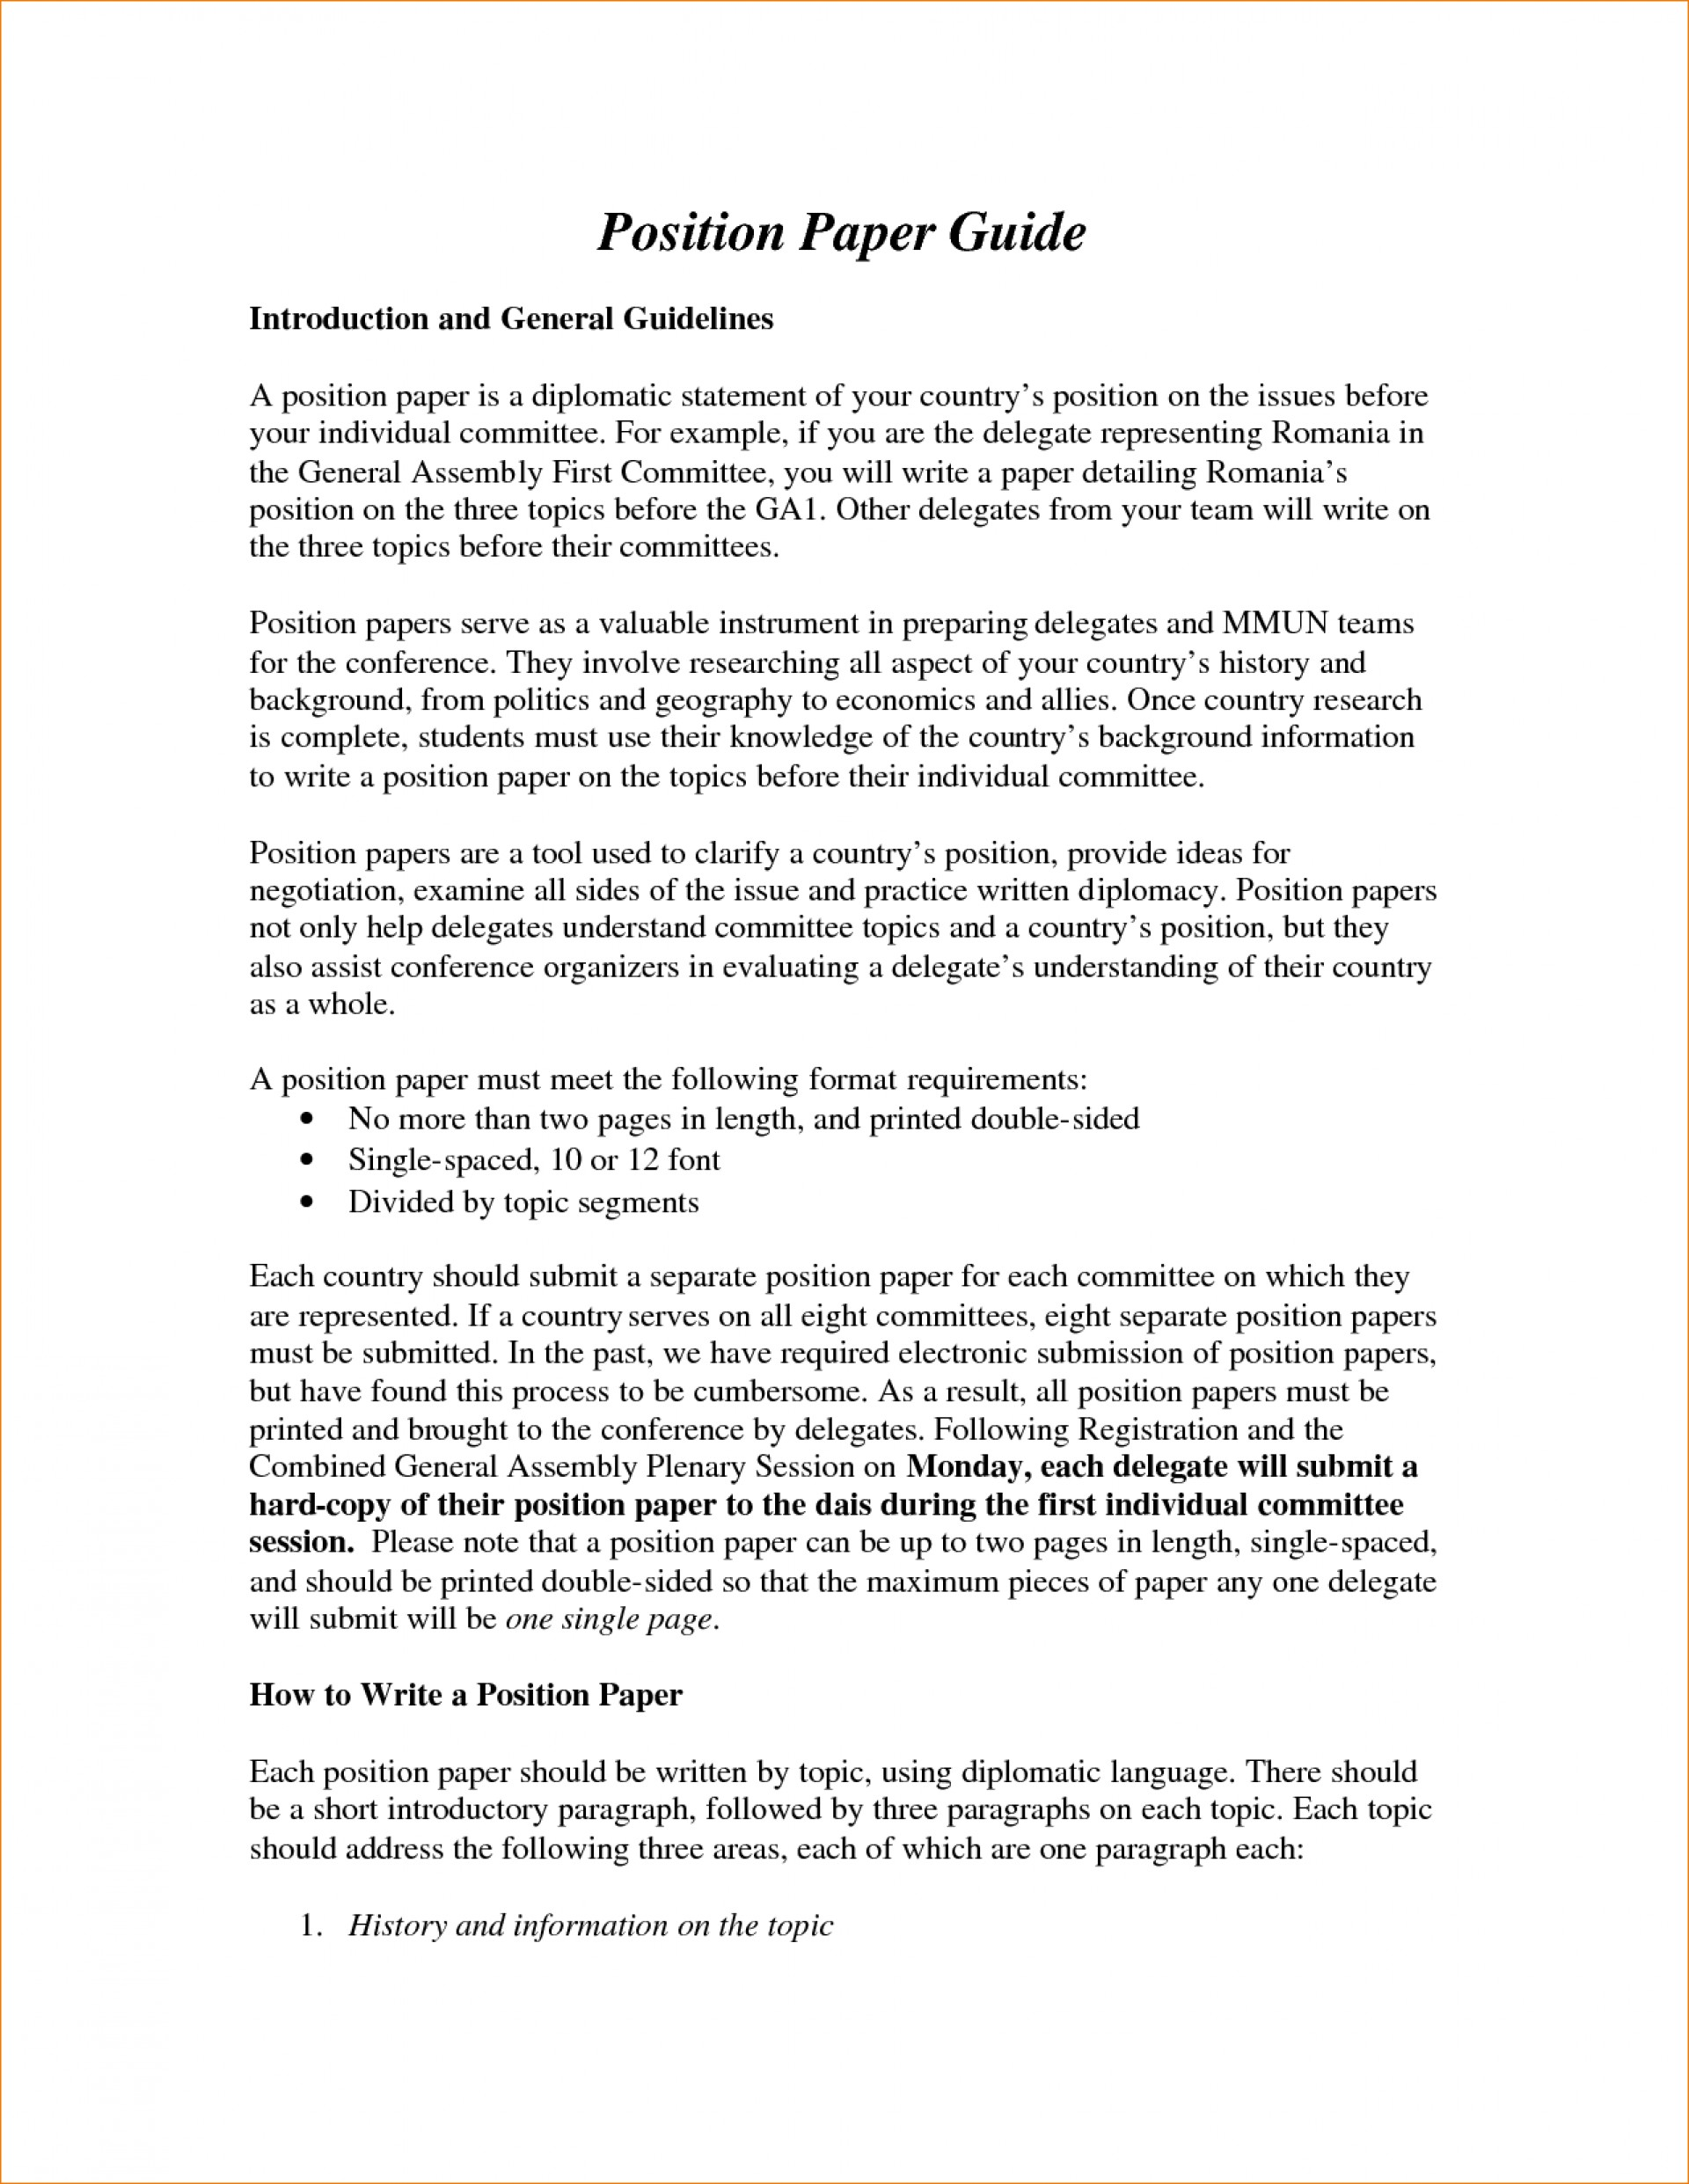 004 Research Paper Proposal Template Striking Example Pdf Topic Format Sample 1920